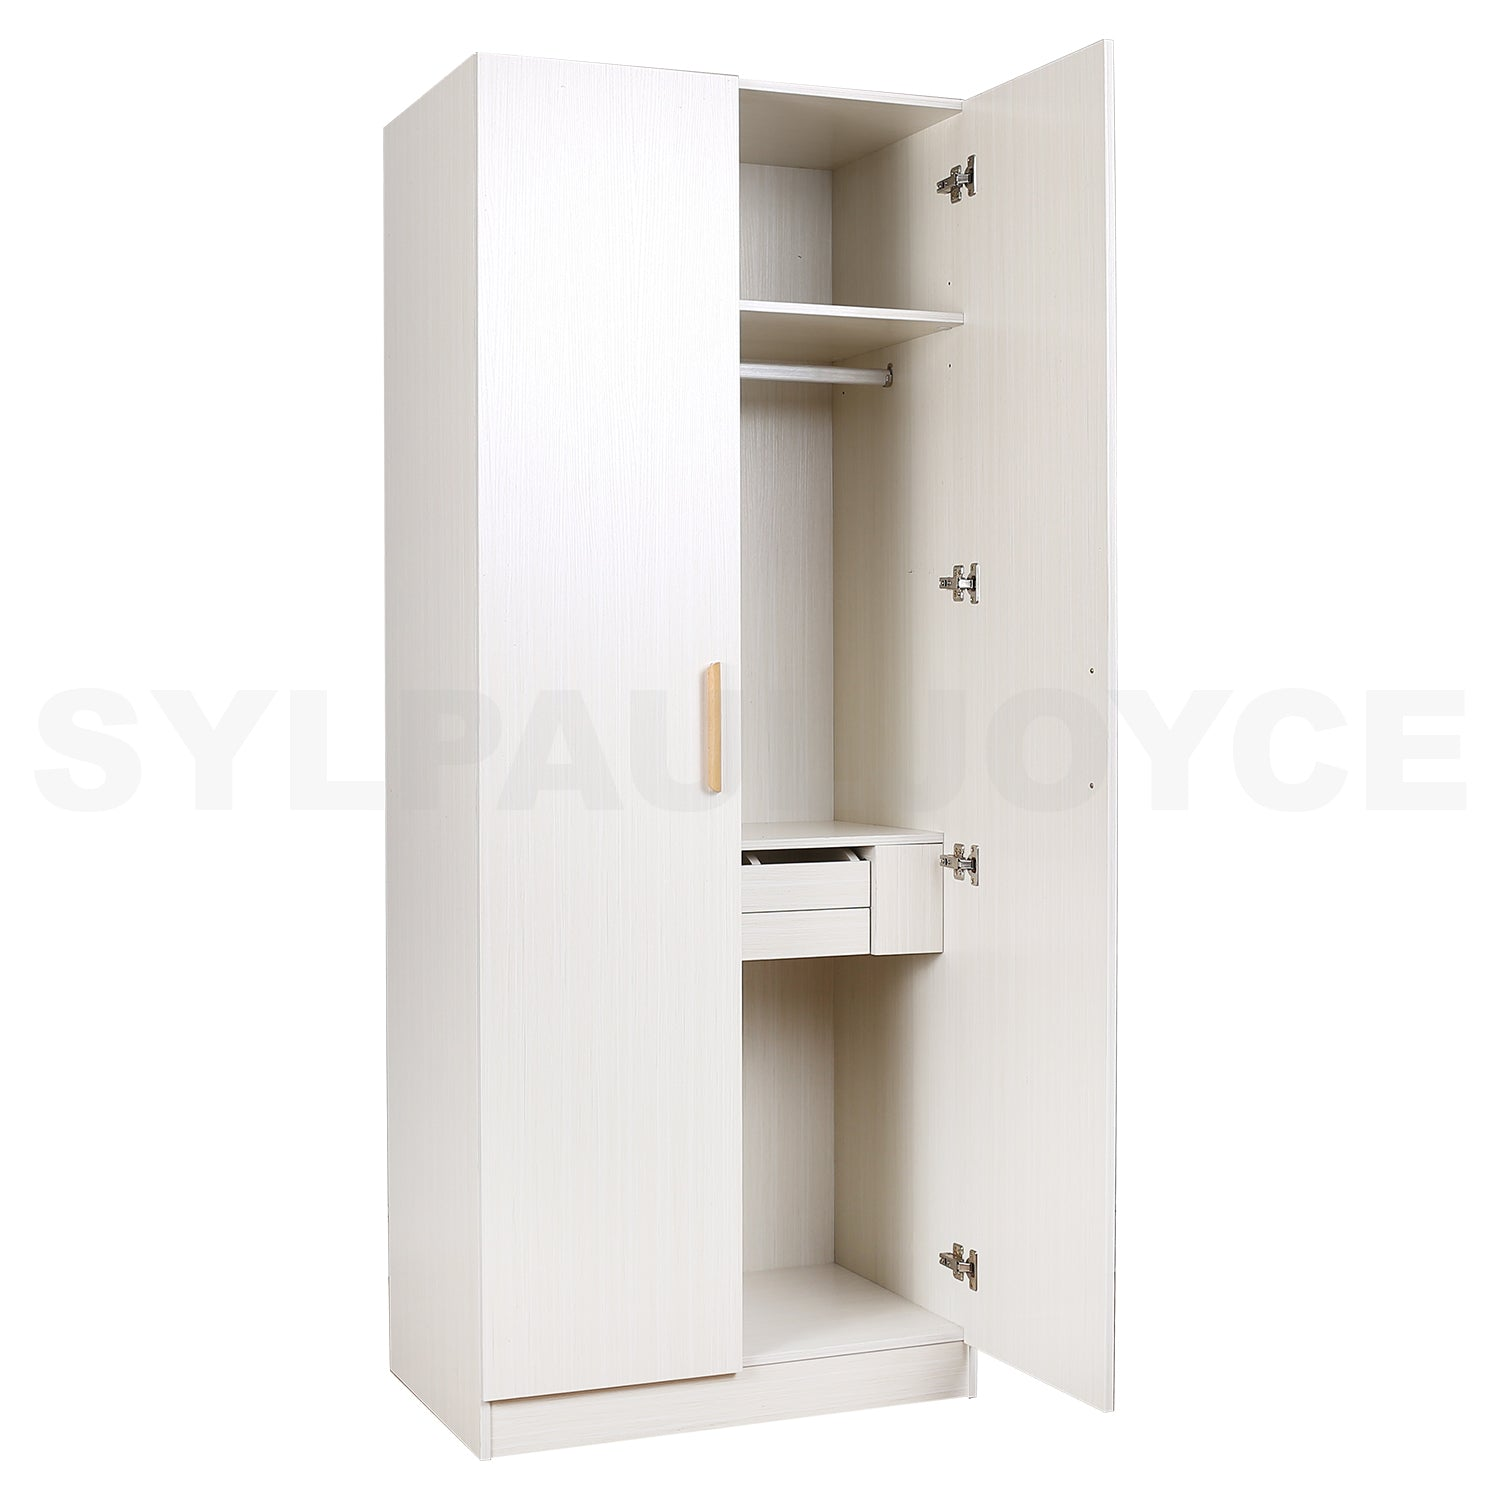 Analyn 2 Door Wardrobe - Sylpauljoyce Furniture, Lights & Decor